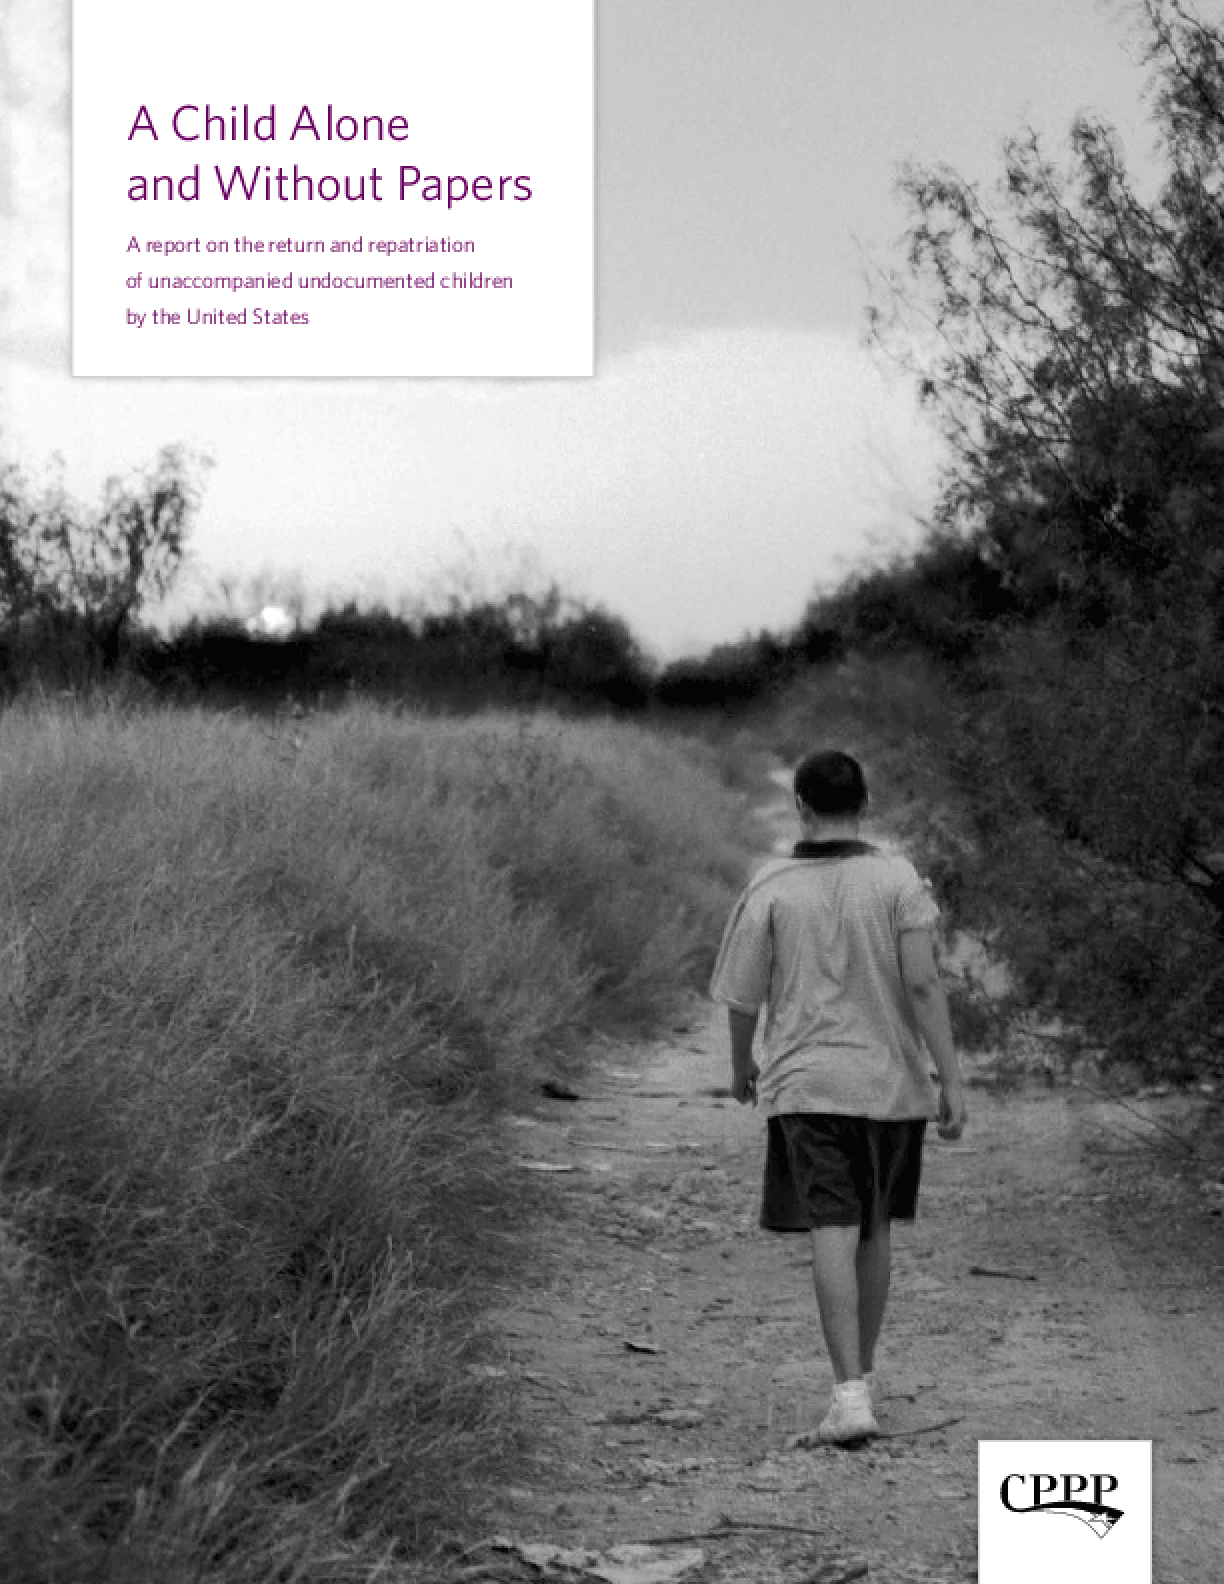 A Child Alone and Without Papers: A Report on the Return and Repatriation of Unaccompanied Undocumented Children by the United States